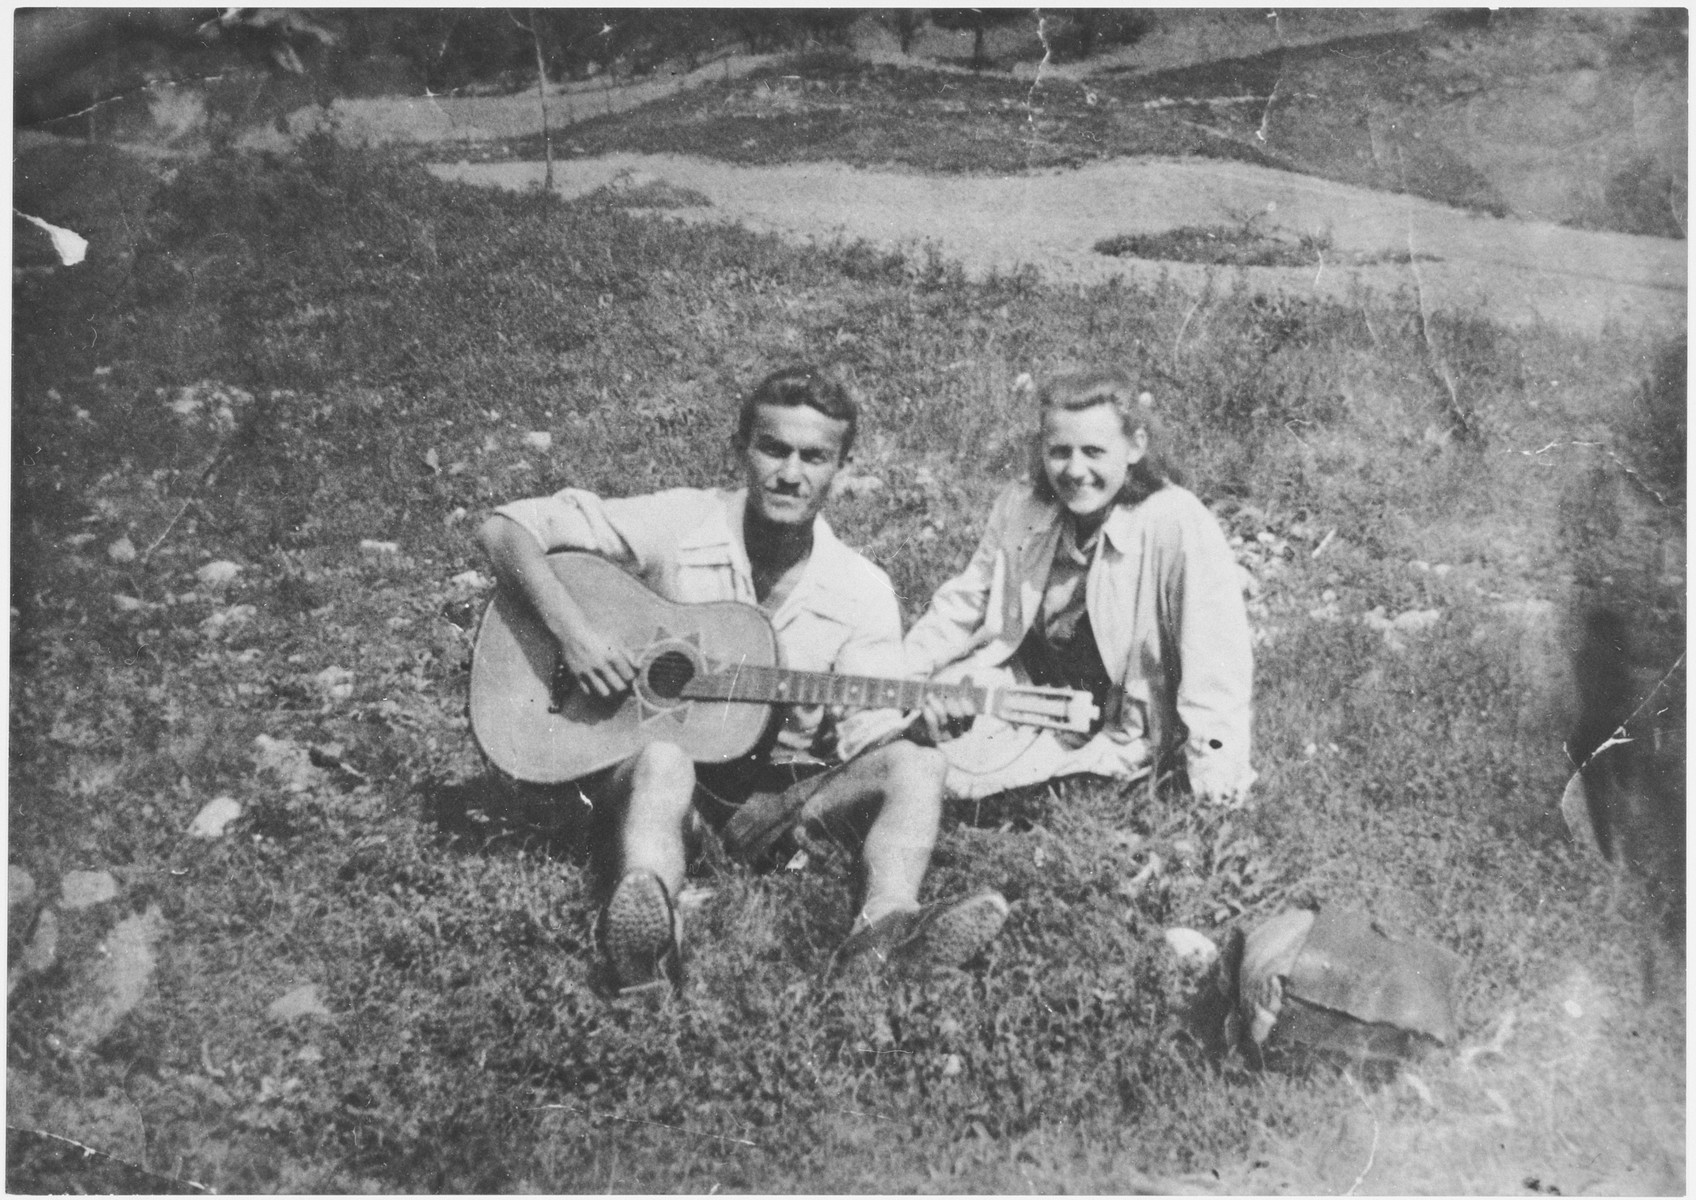 A Bosnian youth plays guitar for his girlfreind while sitting in an open field.  Pictured are Slavko Stolic and his girlfriend Angelina Ditrik. Slavko Stolic was an iron-monger in the Bosnian town of Zenica.  He was arrested there on December 8, 1944 and deported to the Jasenovac concentration camp one week later.  He was killed there in April 1945. Angelina Ditrik was also killed in Jasenovac, along with her two sisters.